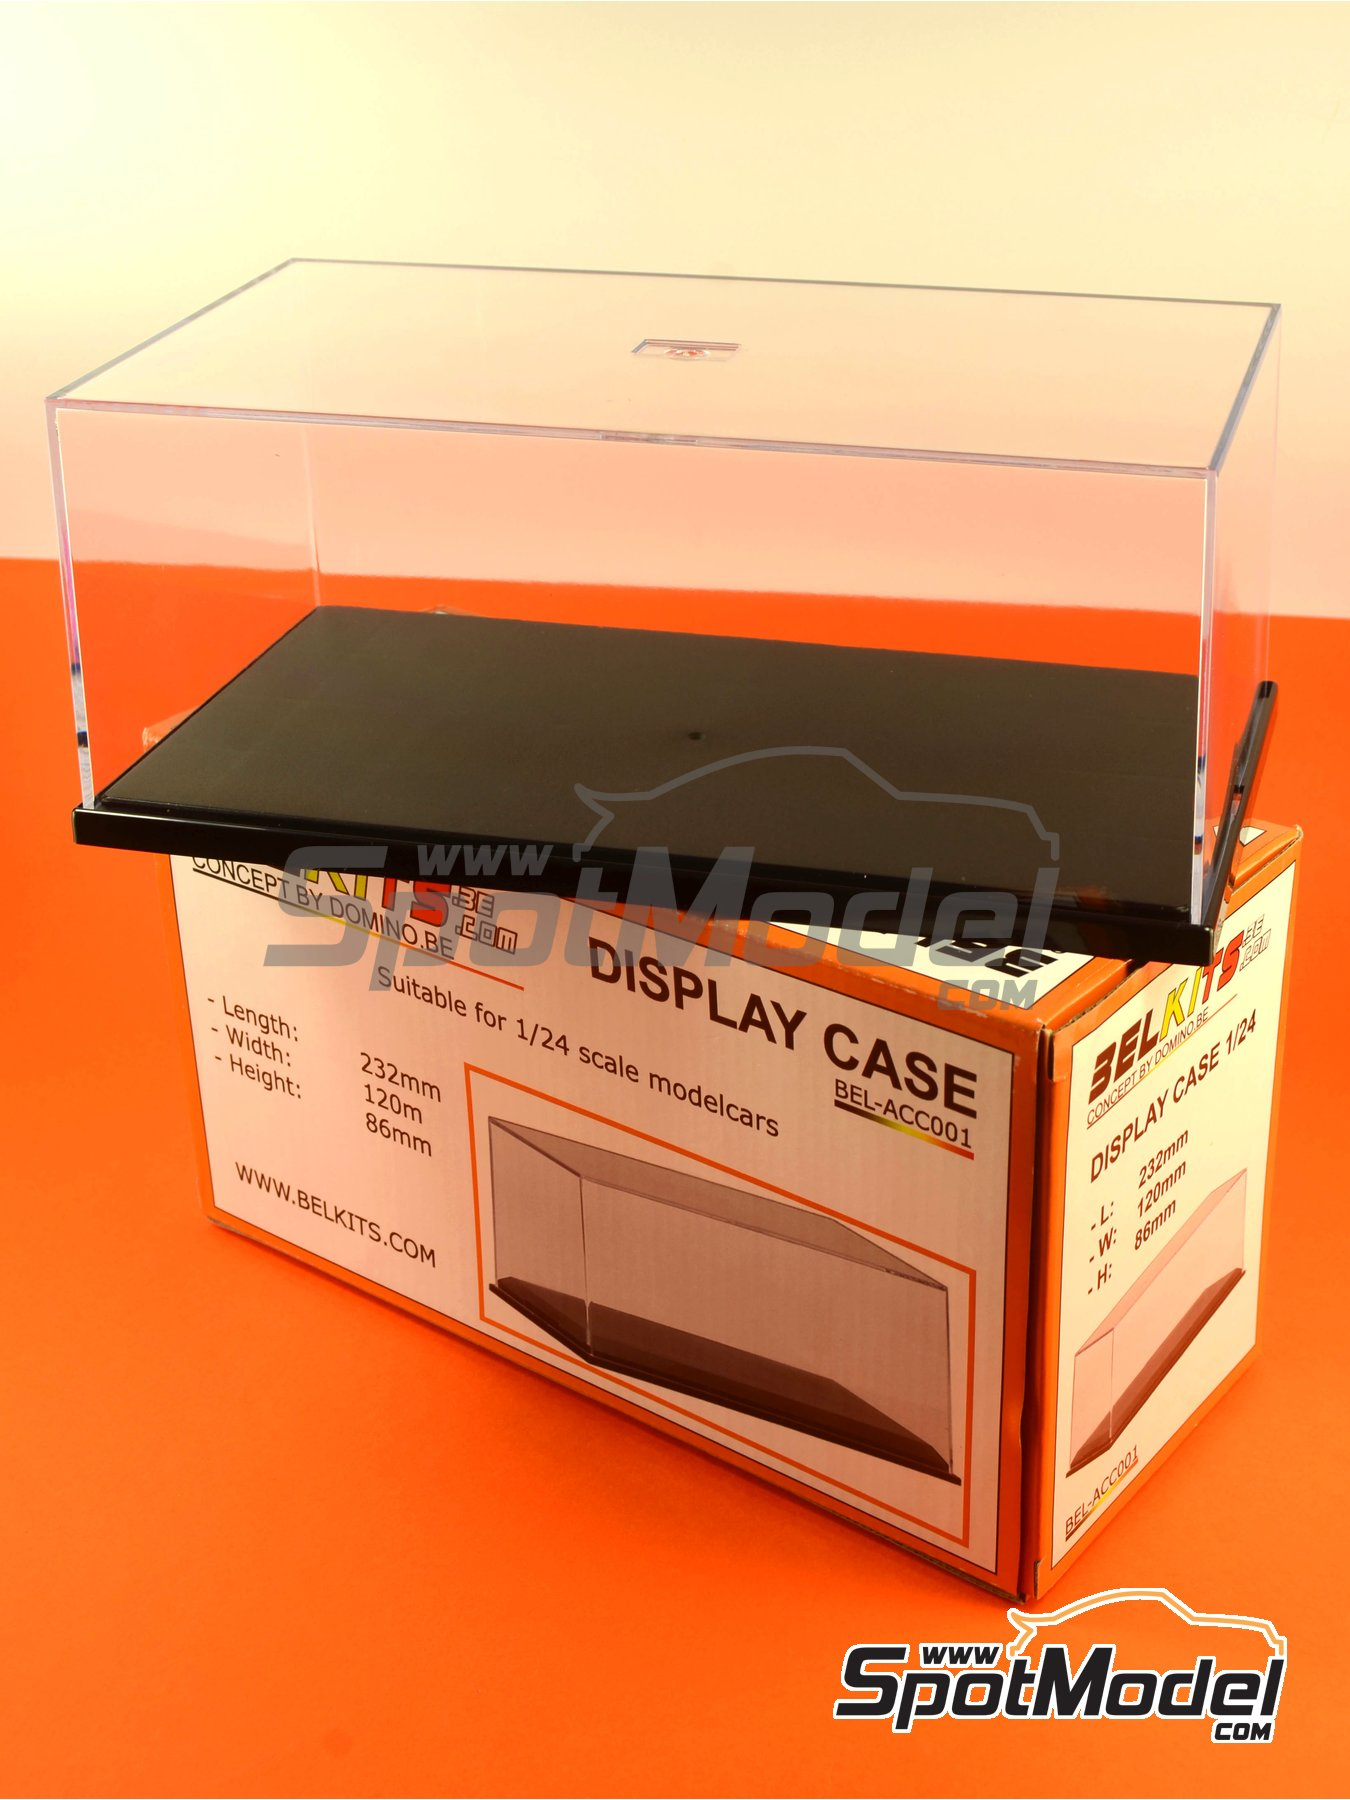 Display case for 1/24 scale model cars | Display case in 1/24 scale manufactured by Belkits (ref. BEL-ACC001) image